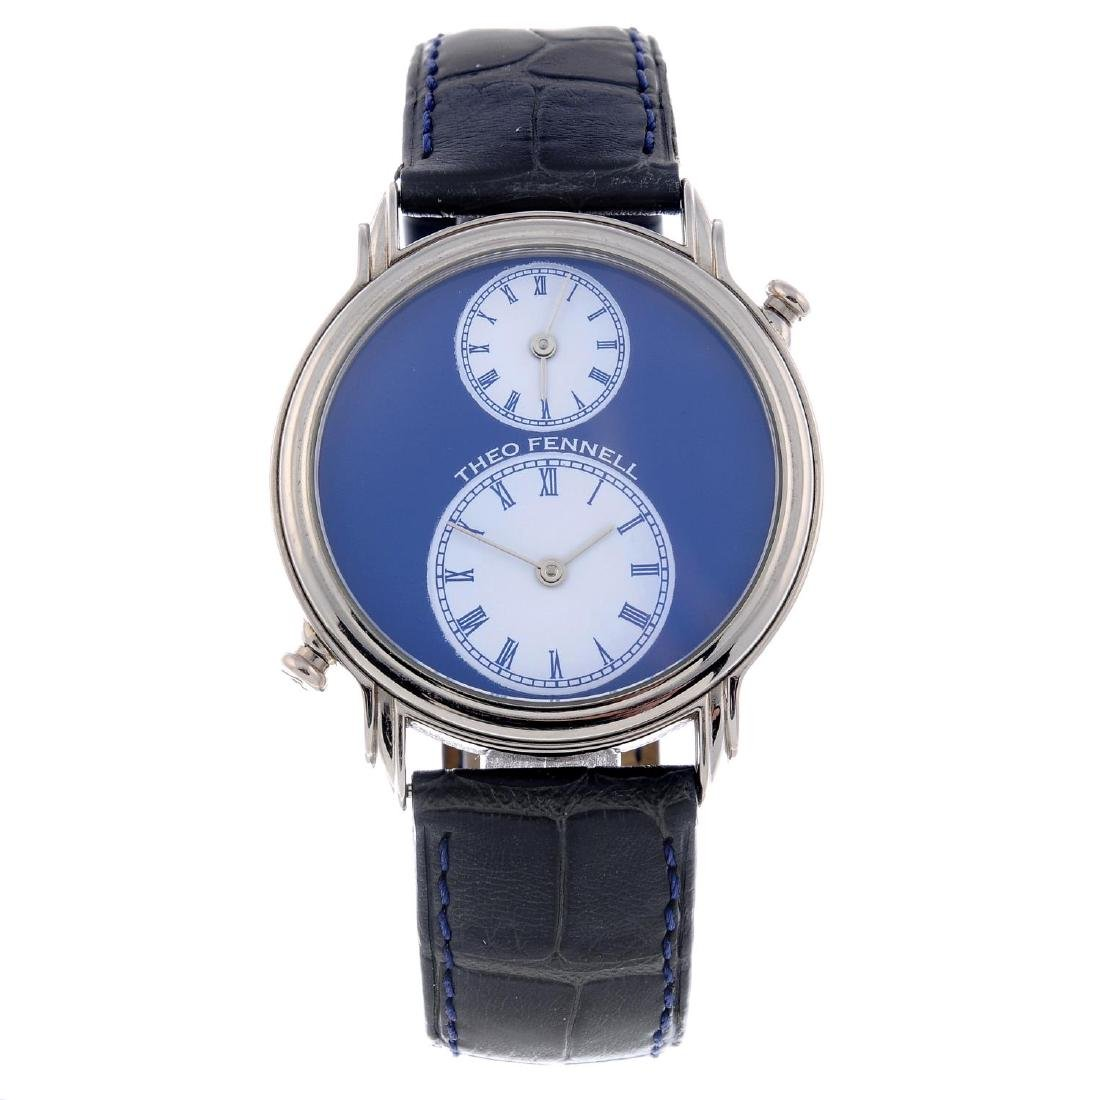 THEO FENNELL - a gentleman's Dual Time wrist watch.